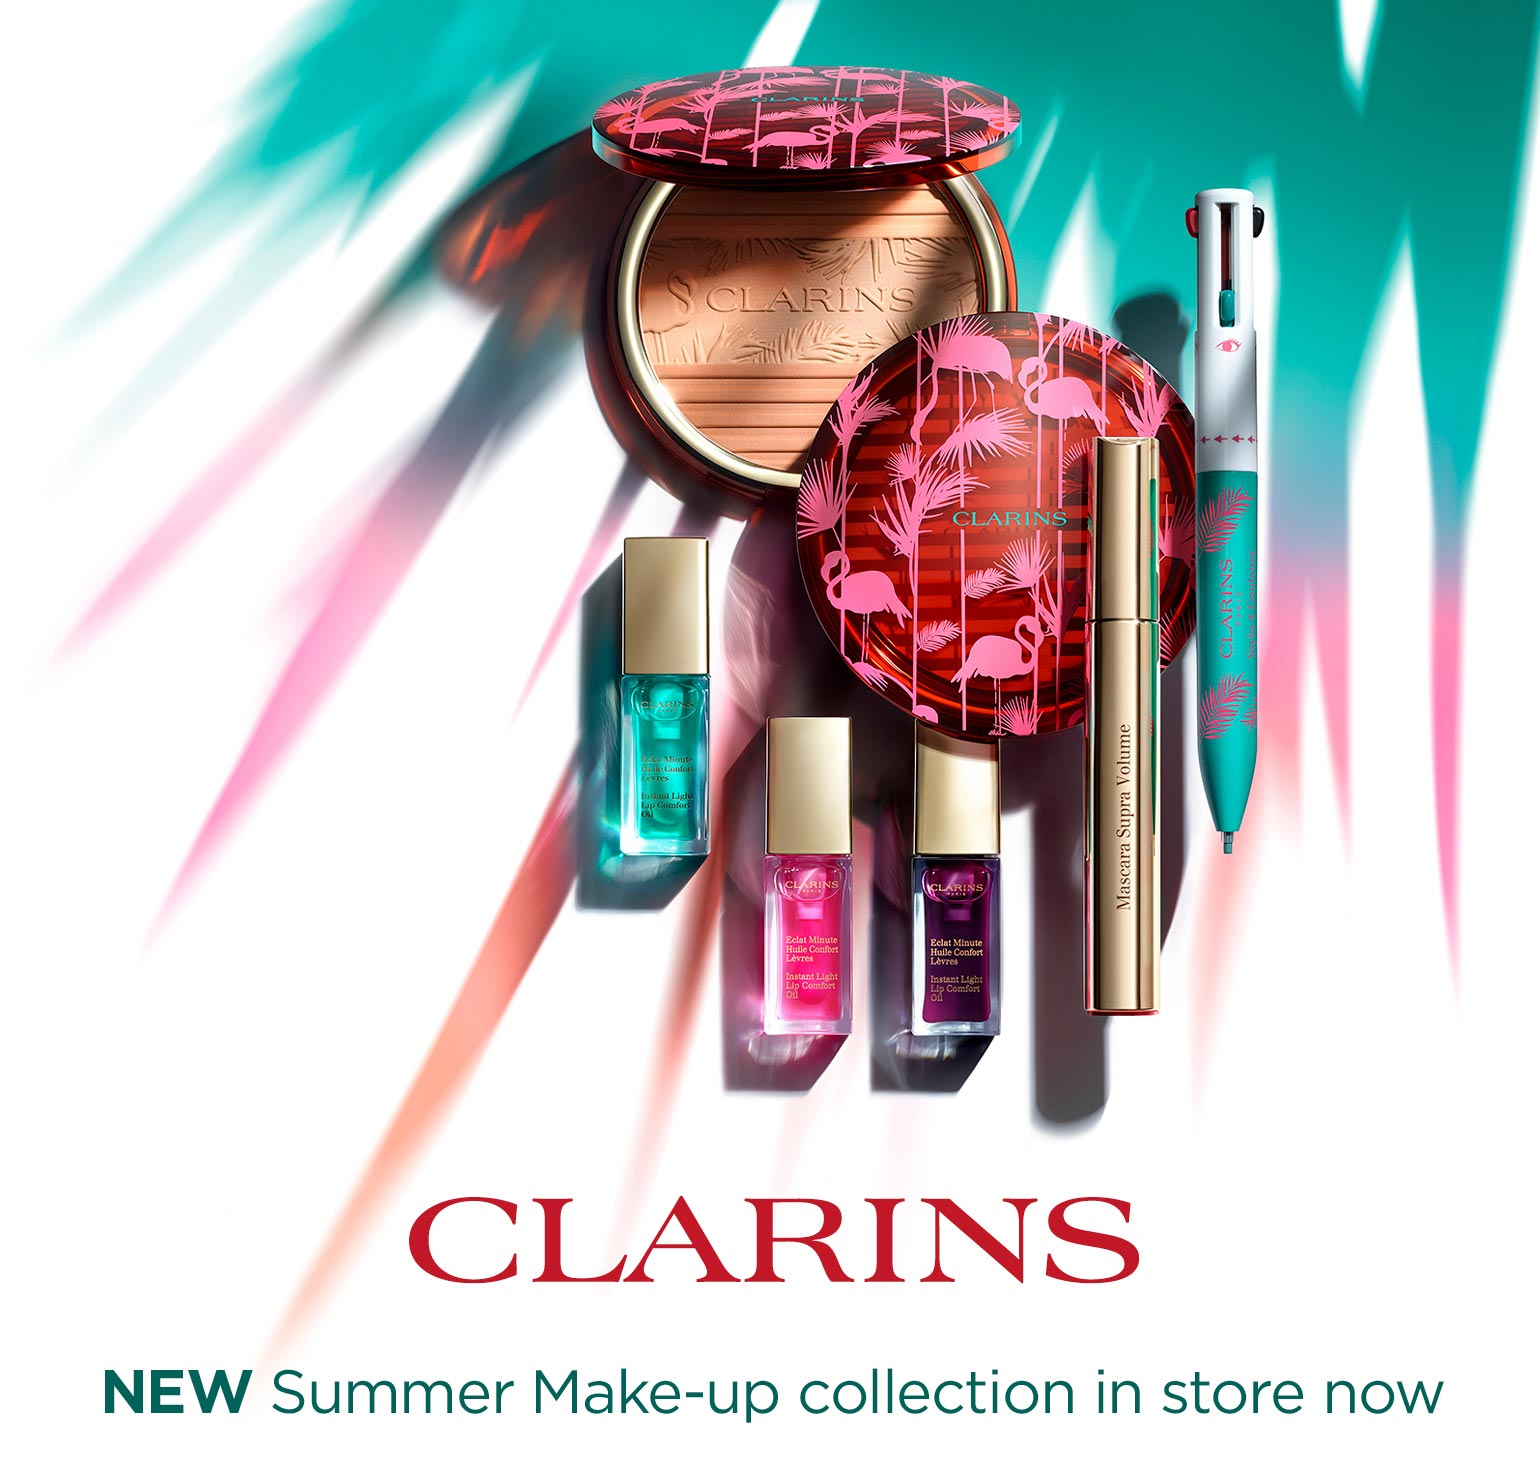 Clarins Summer 2018 make-up collection